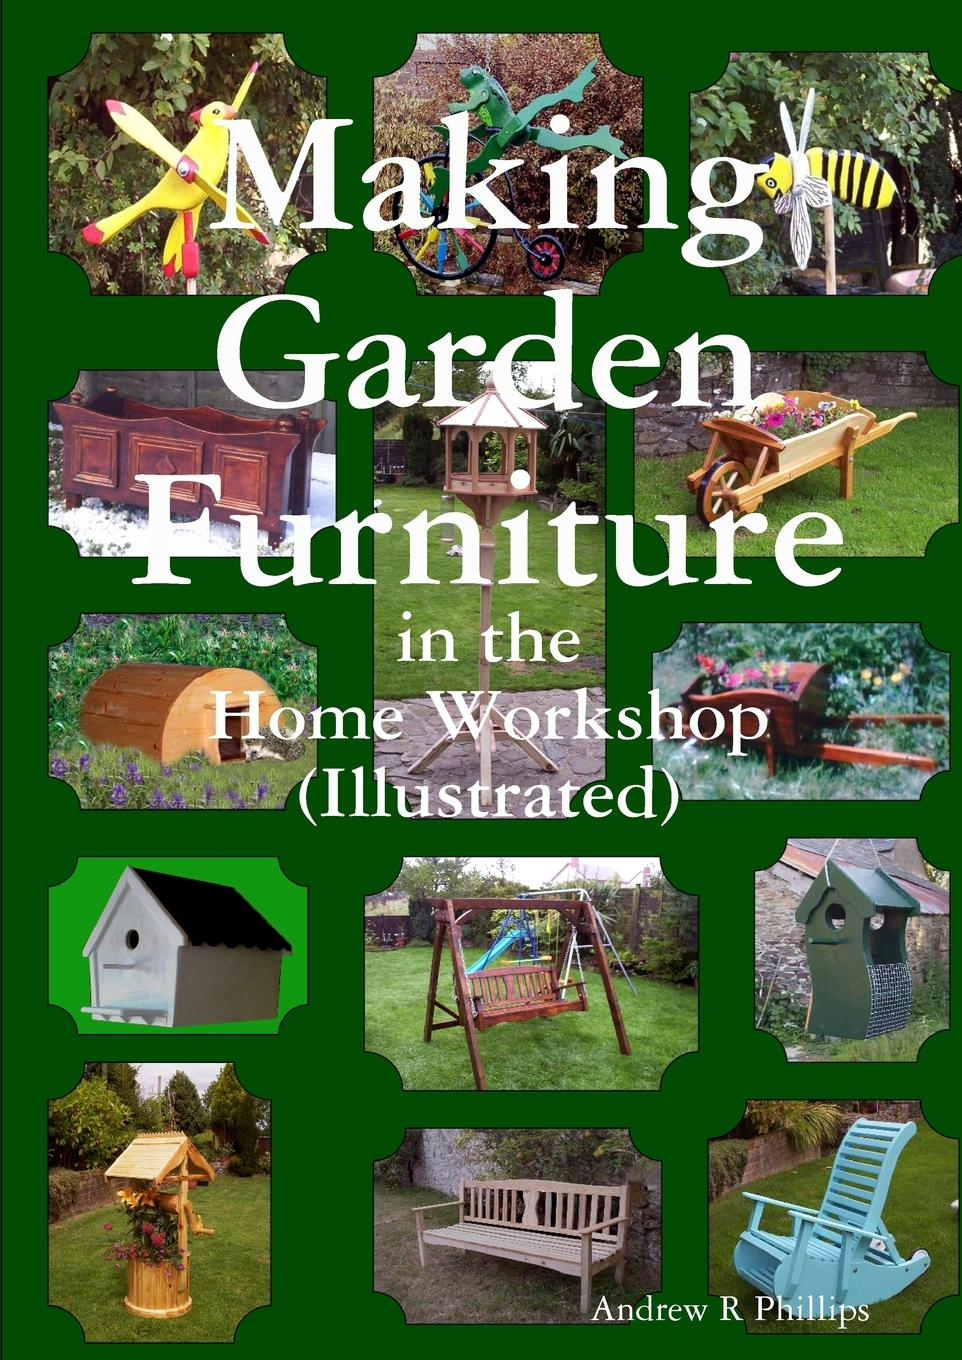 Andrew Phillips Making garden furniture in the home work shop by A.R.Phillips the untamed garden